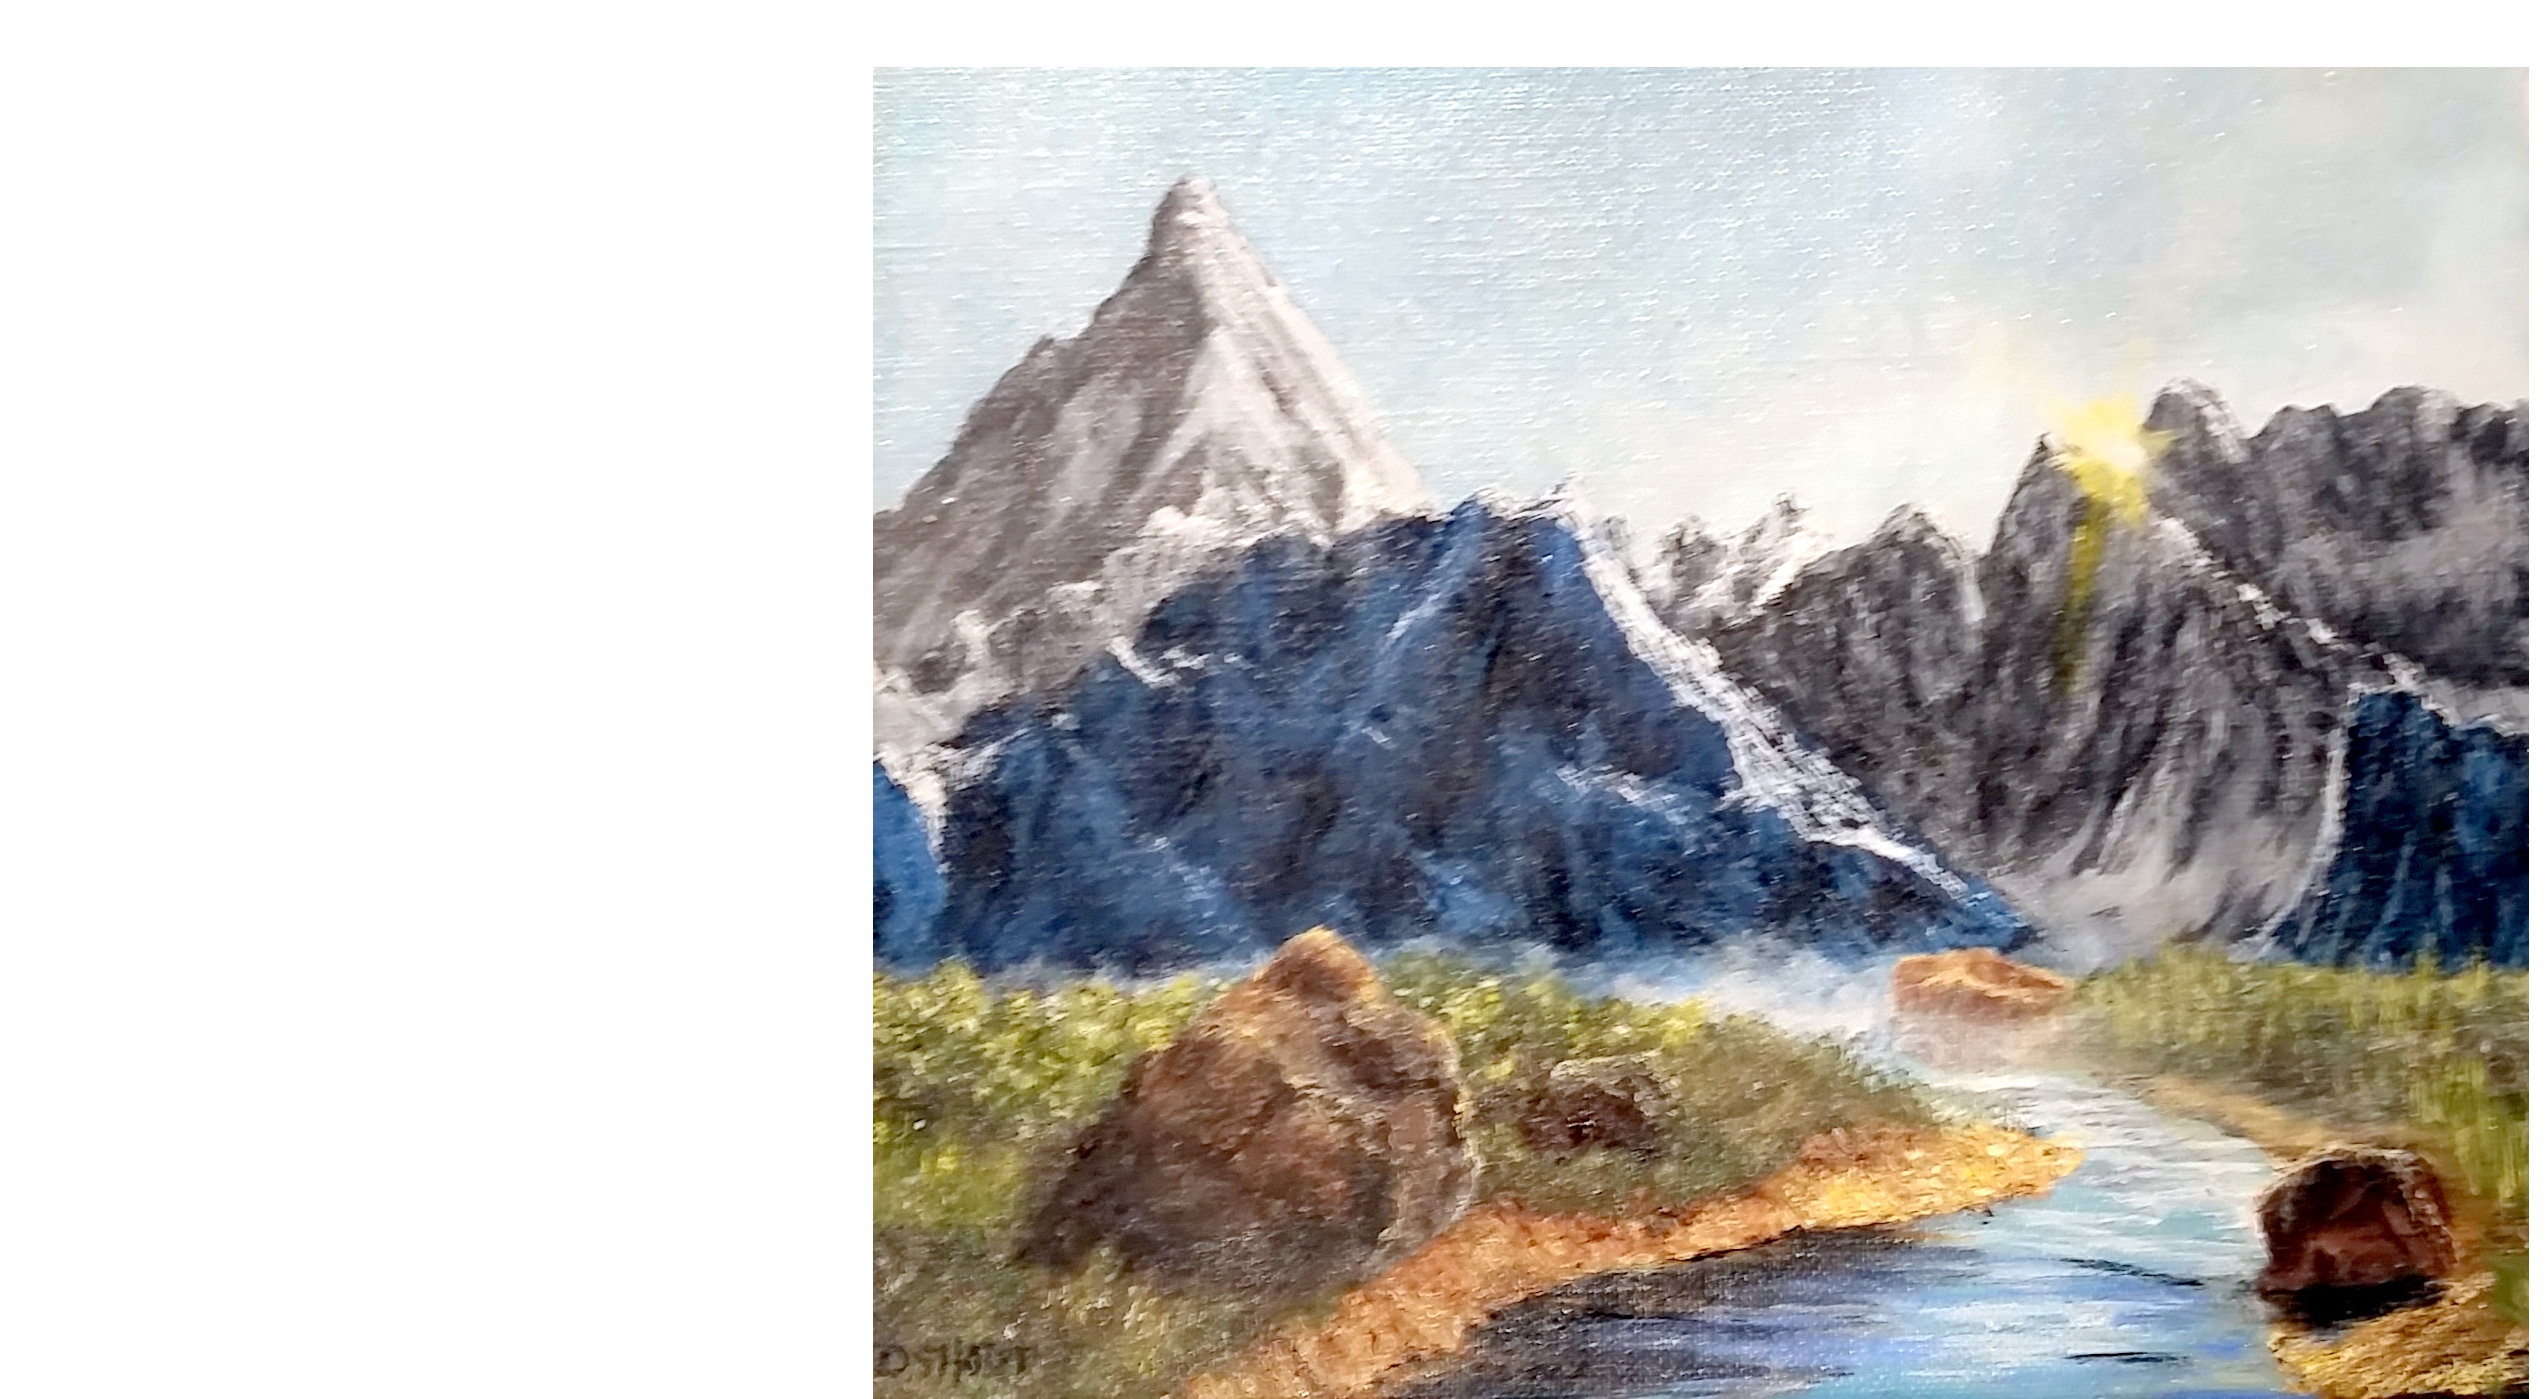 David Short, Altitude paintings, Contemporary Artist, Realist painter, trains, mountains, Milky Way, Ireland, oil paintings, original art, Virginia Artist, local RVA artist